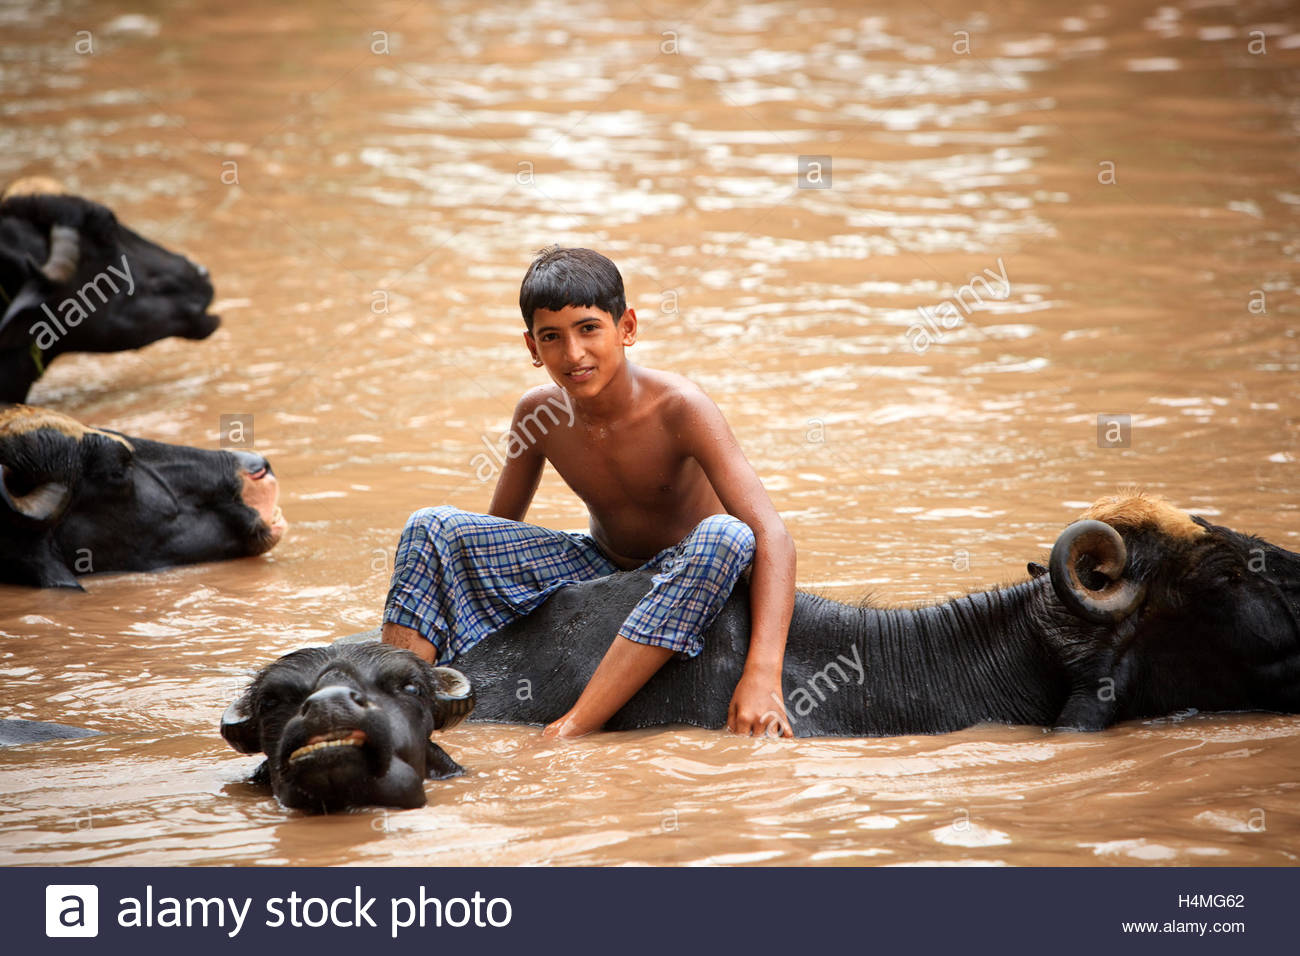 A boy sits on an ox in a muddy river near Lahore, Pakistan. - Stock Image